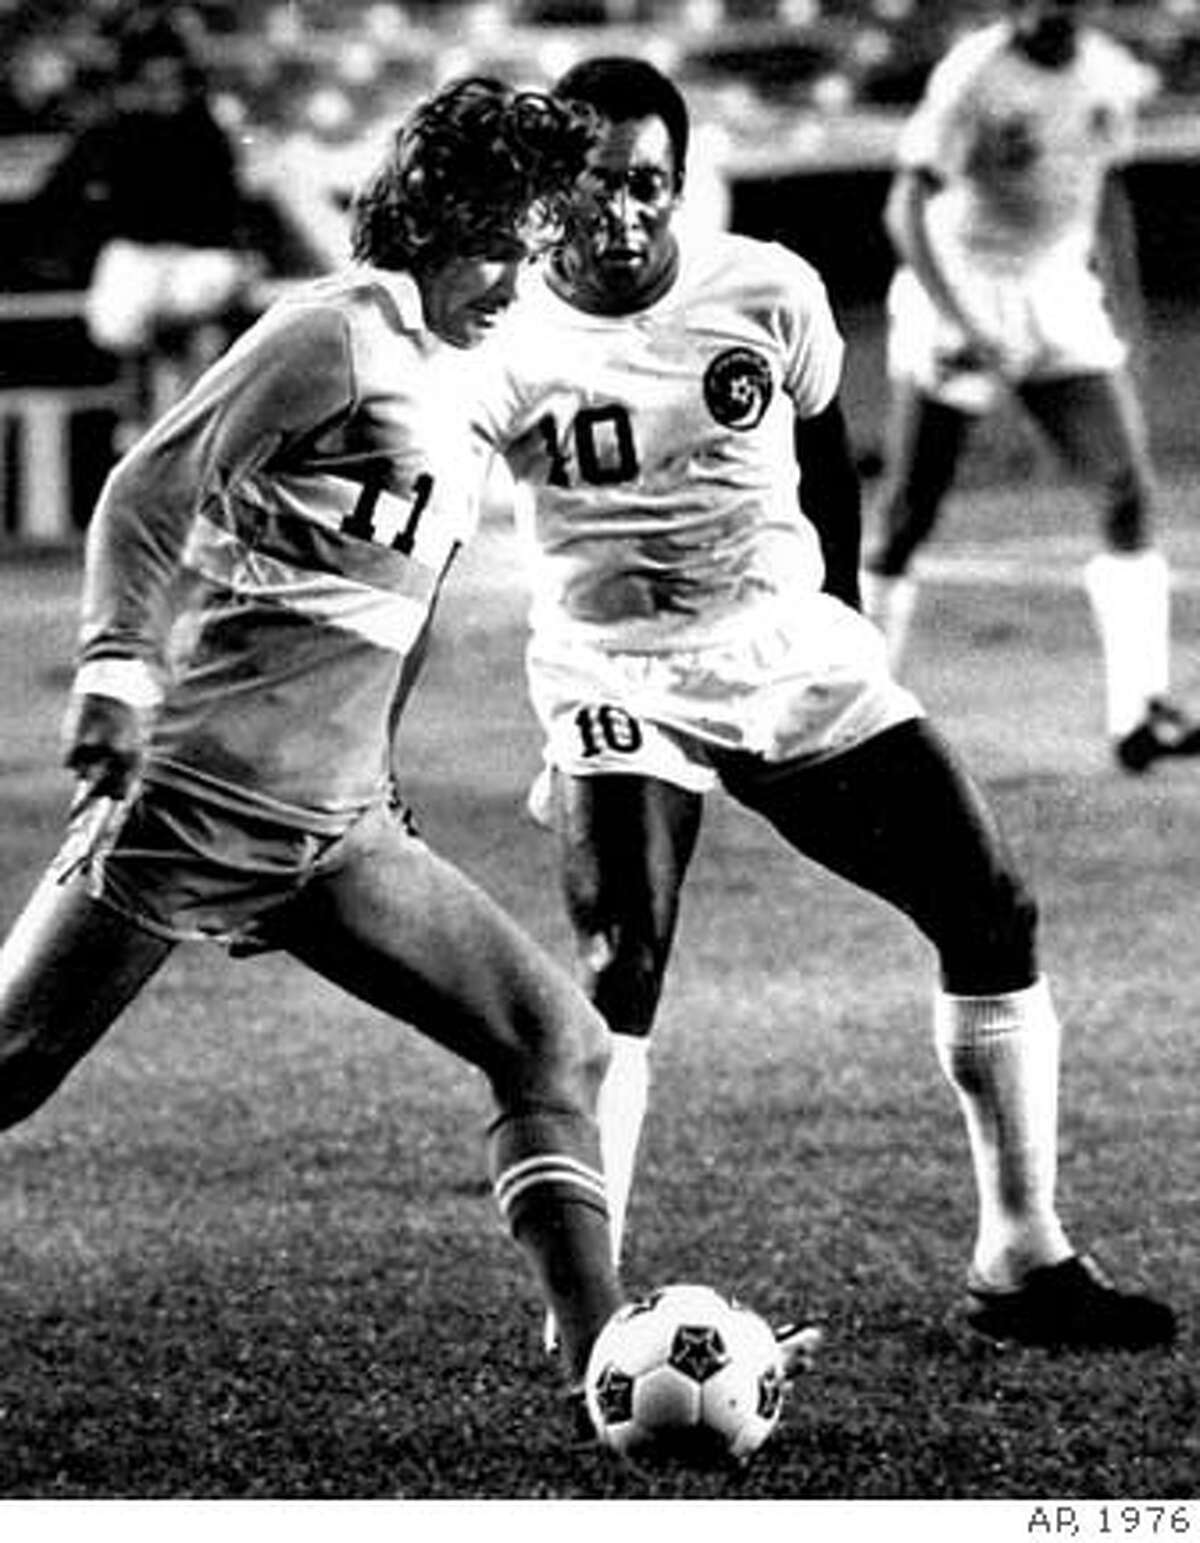 ** FILE ** L.A. Aztecs' George Best, left, dribbles the ball past Pele, of New York Cosmos, during a North American Soccer League game at the Yankee Stadium, in New York in this May 17, 1976 file photo. Best, the dazzling soccer icon of the 1960s and 70s who reveled in a hard-drinking playboy lifestyle, died Friday Nov. 25, 2005 after decades of alcohol abuse, hospital officials said. He was 59. (AP Photo)